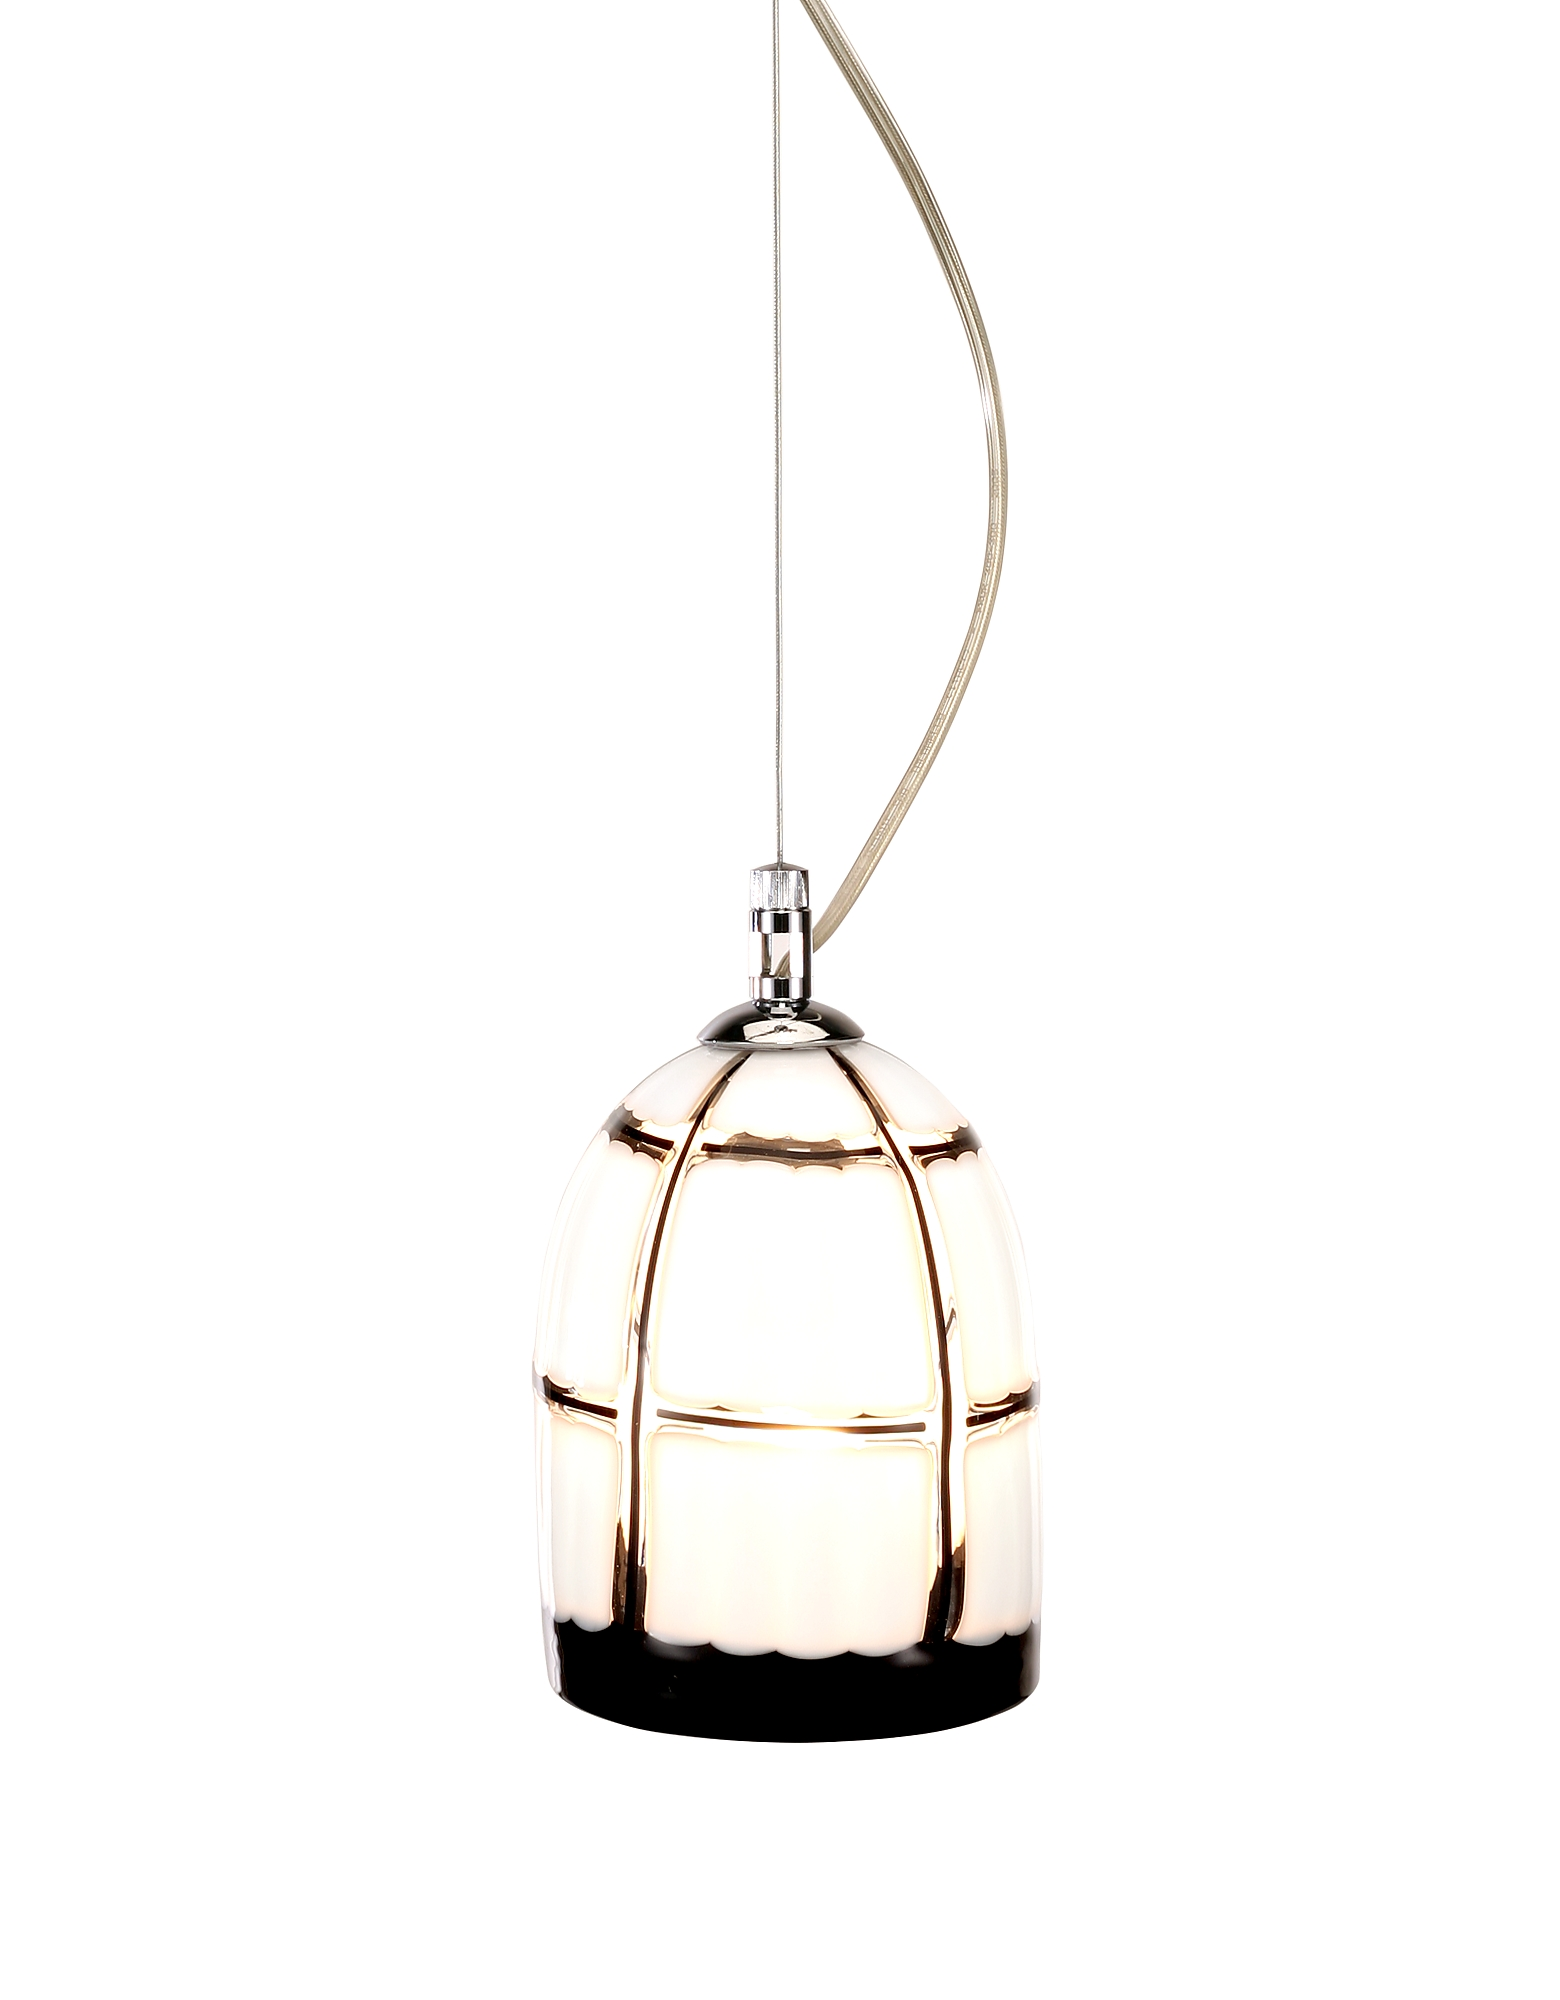 Voltolina Designer Decor & Lighting, Quadri - Murano Handmade Glass Pendant Lamp